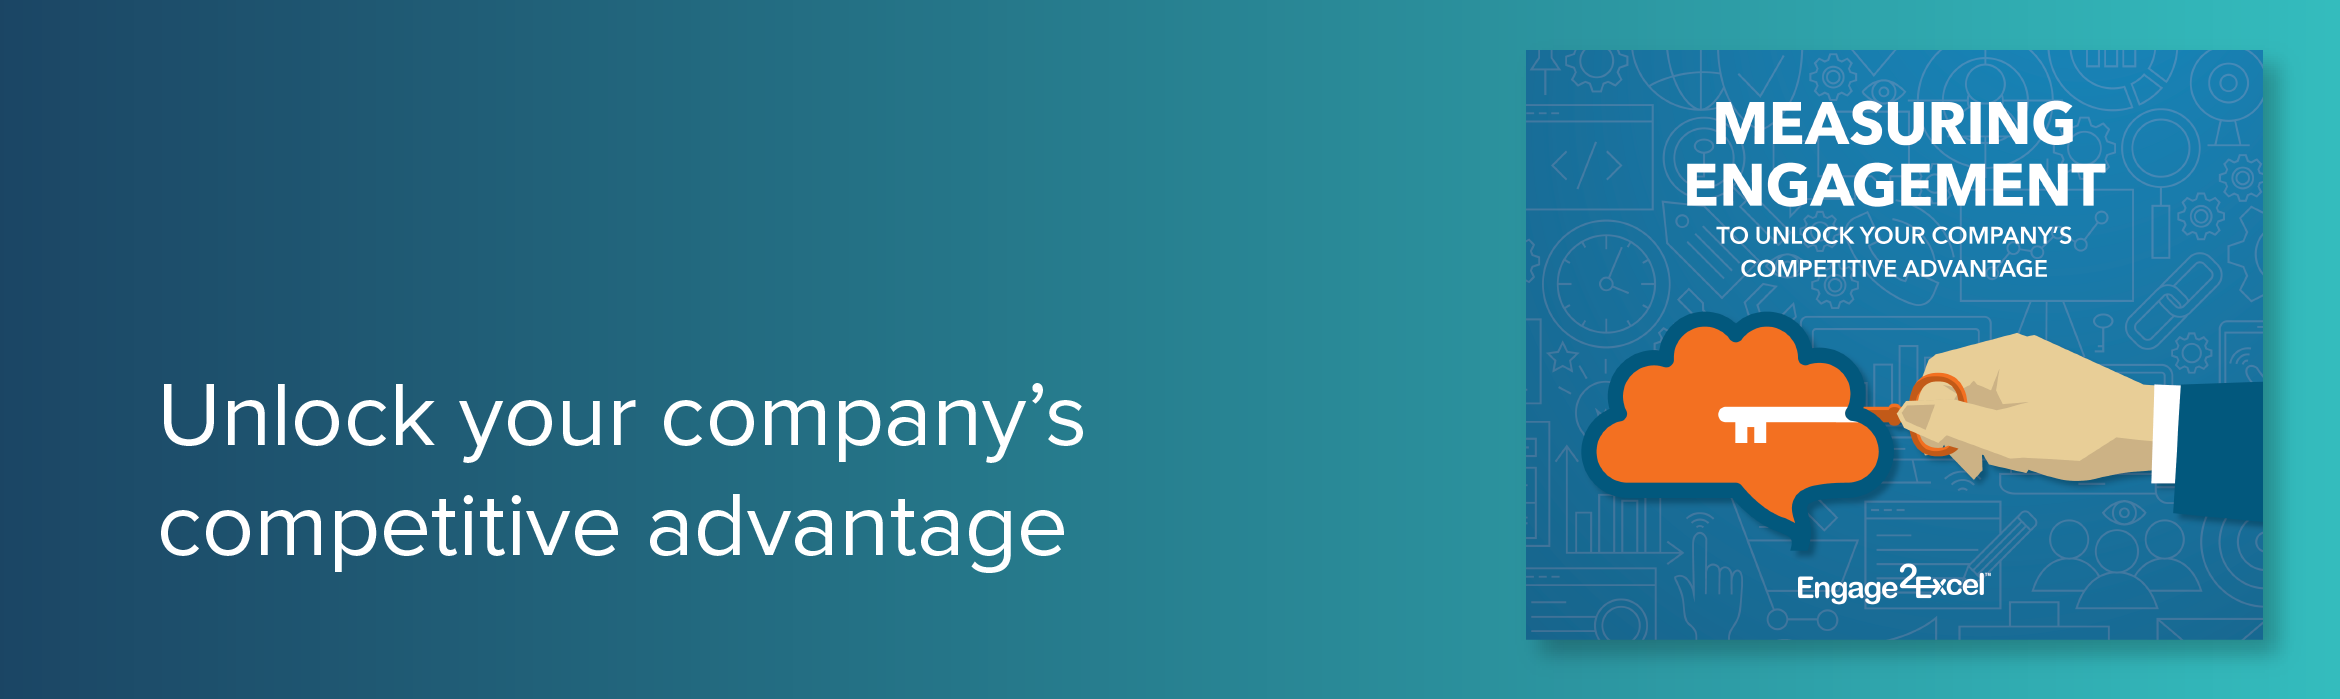 Unlock Your Company's Competitive Advantage